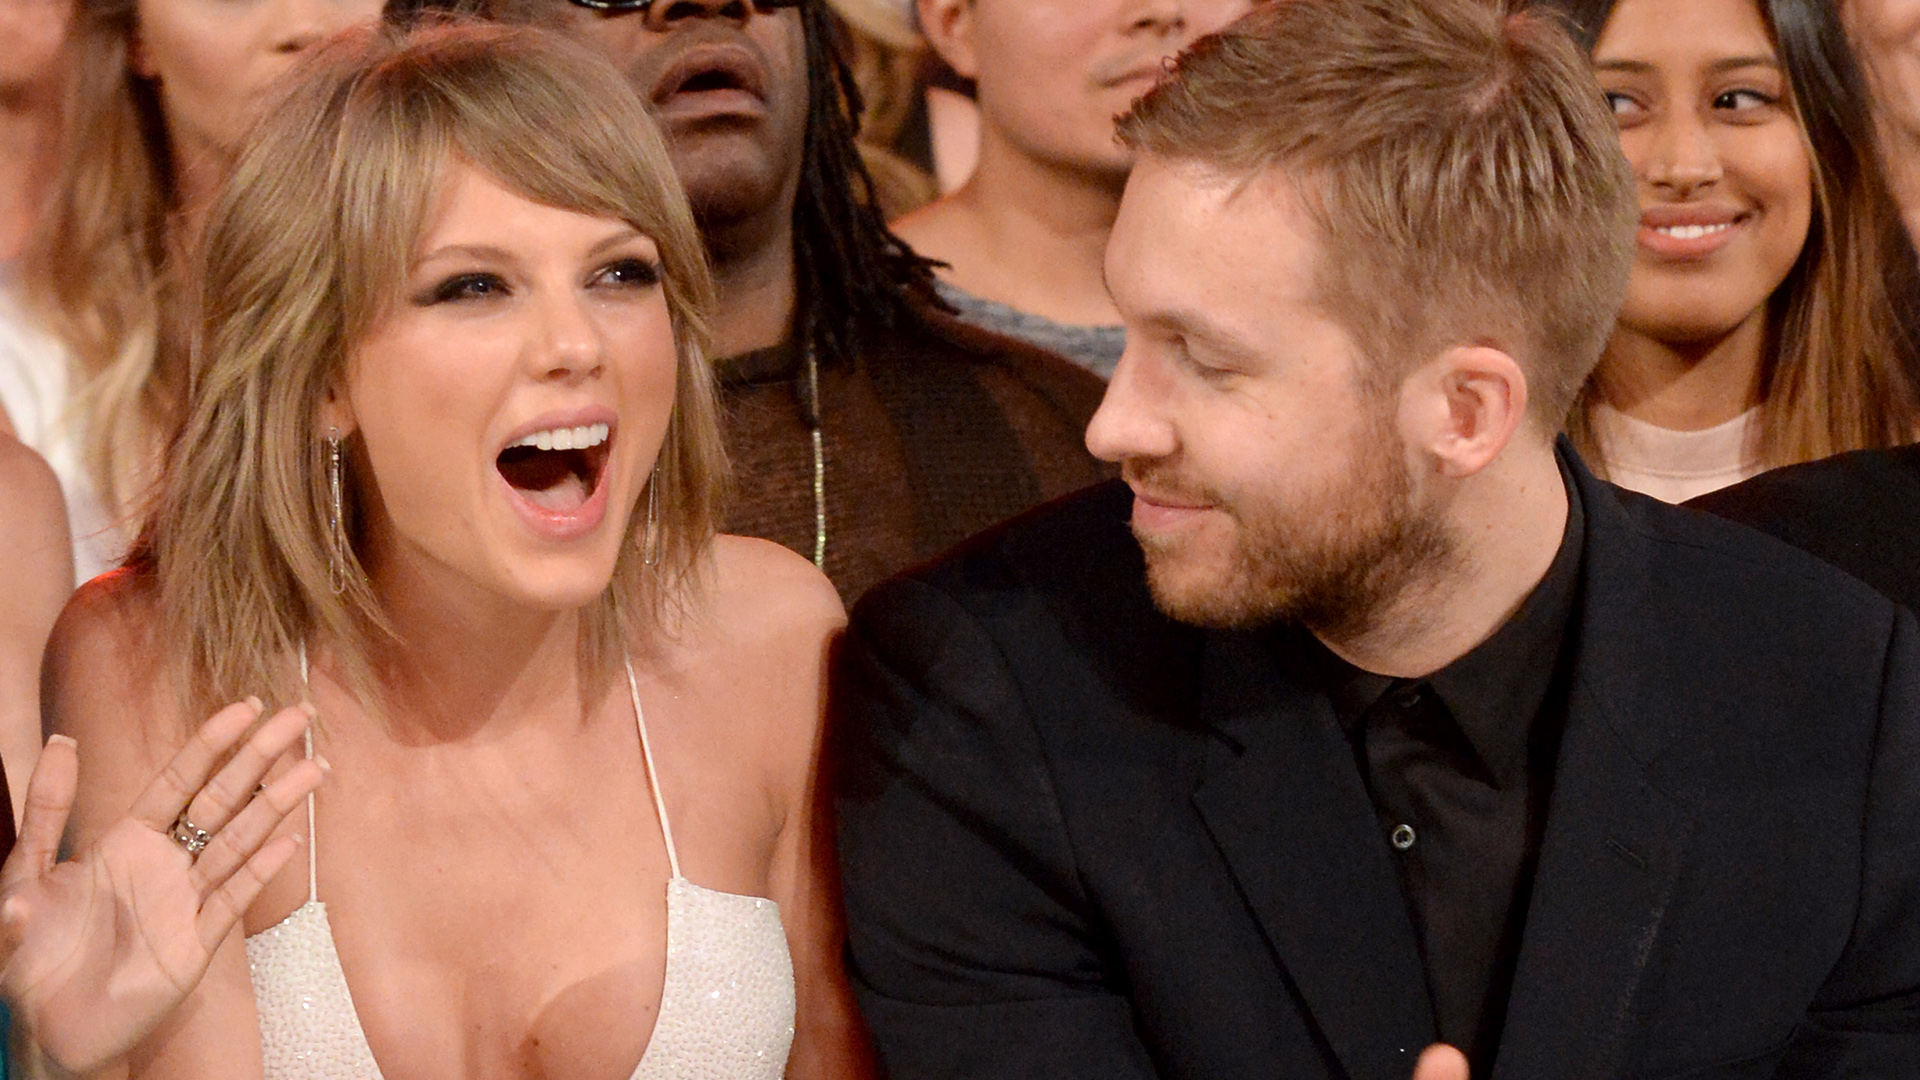 Taylor Swift Wrote Ex Calvin Harris and Rihanna's Hit 'This Is What You Came For,' Her Rep Confirms